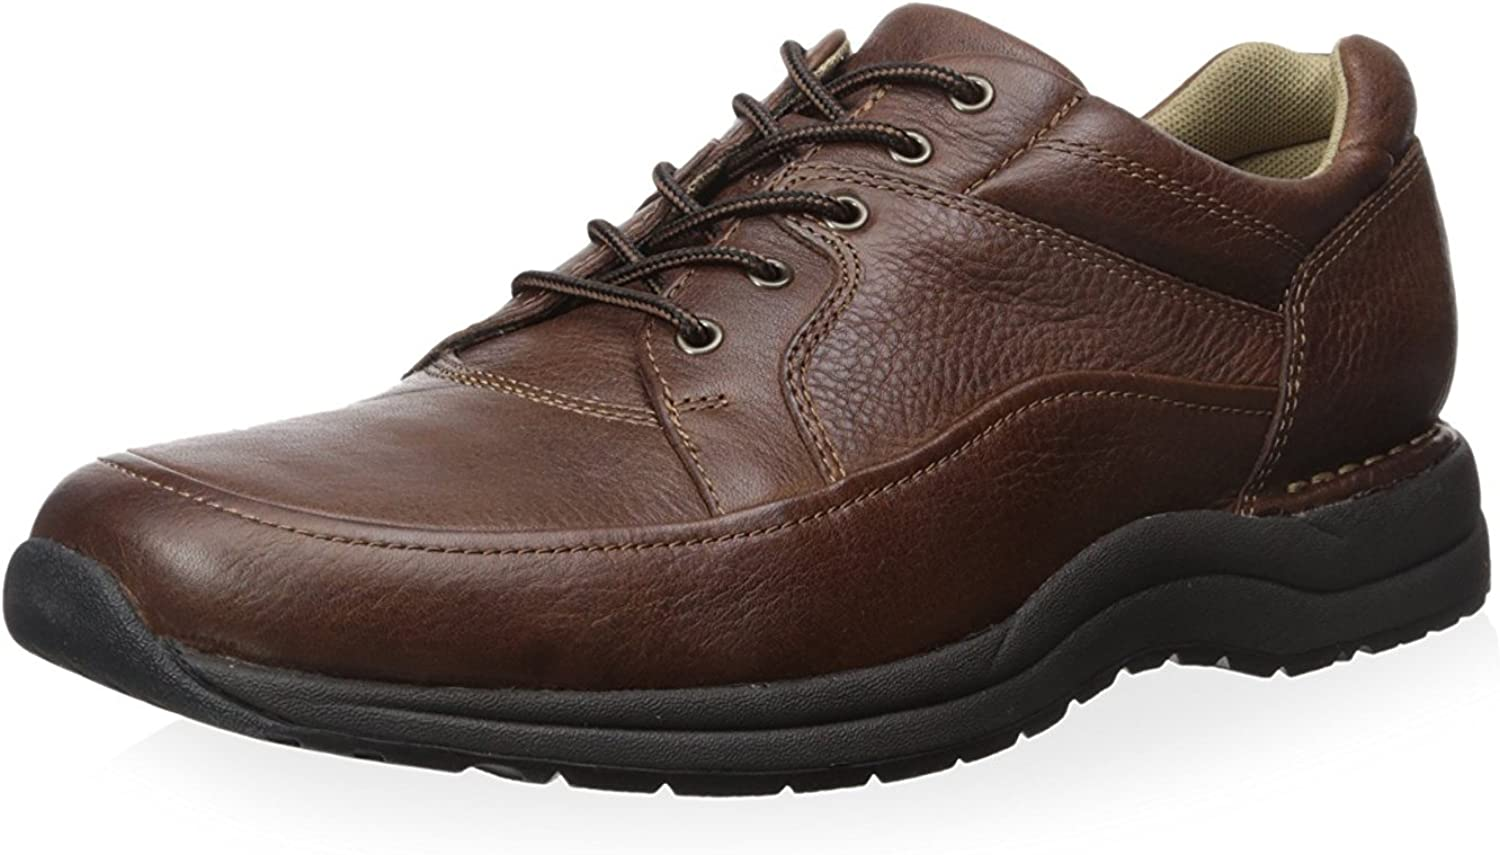 Rockport - Chaussures Edge Hill pour Hommes, 45 W EU, BRN Pull